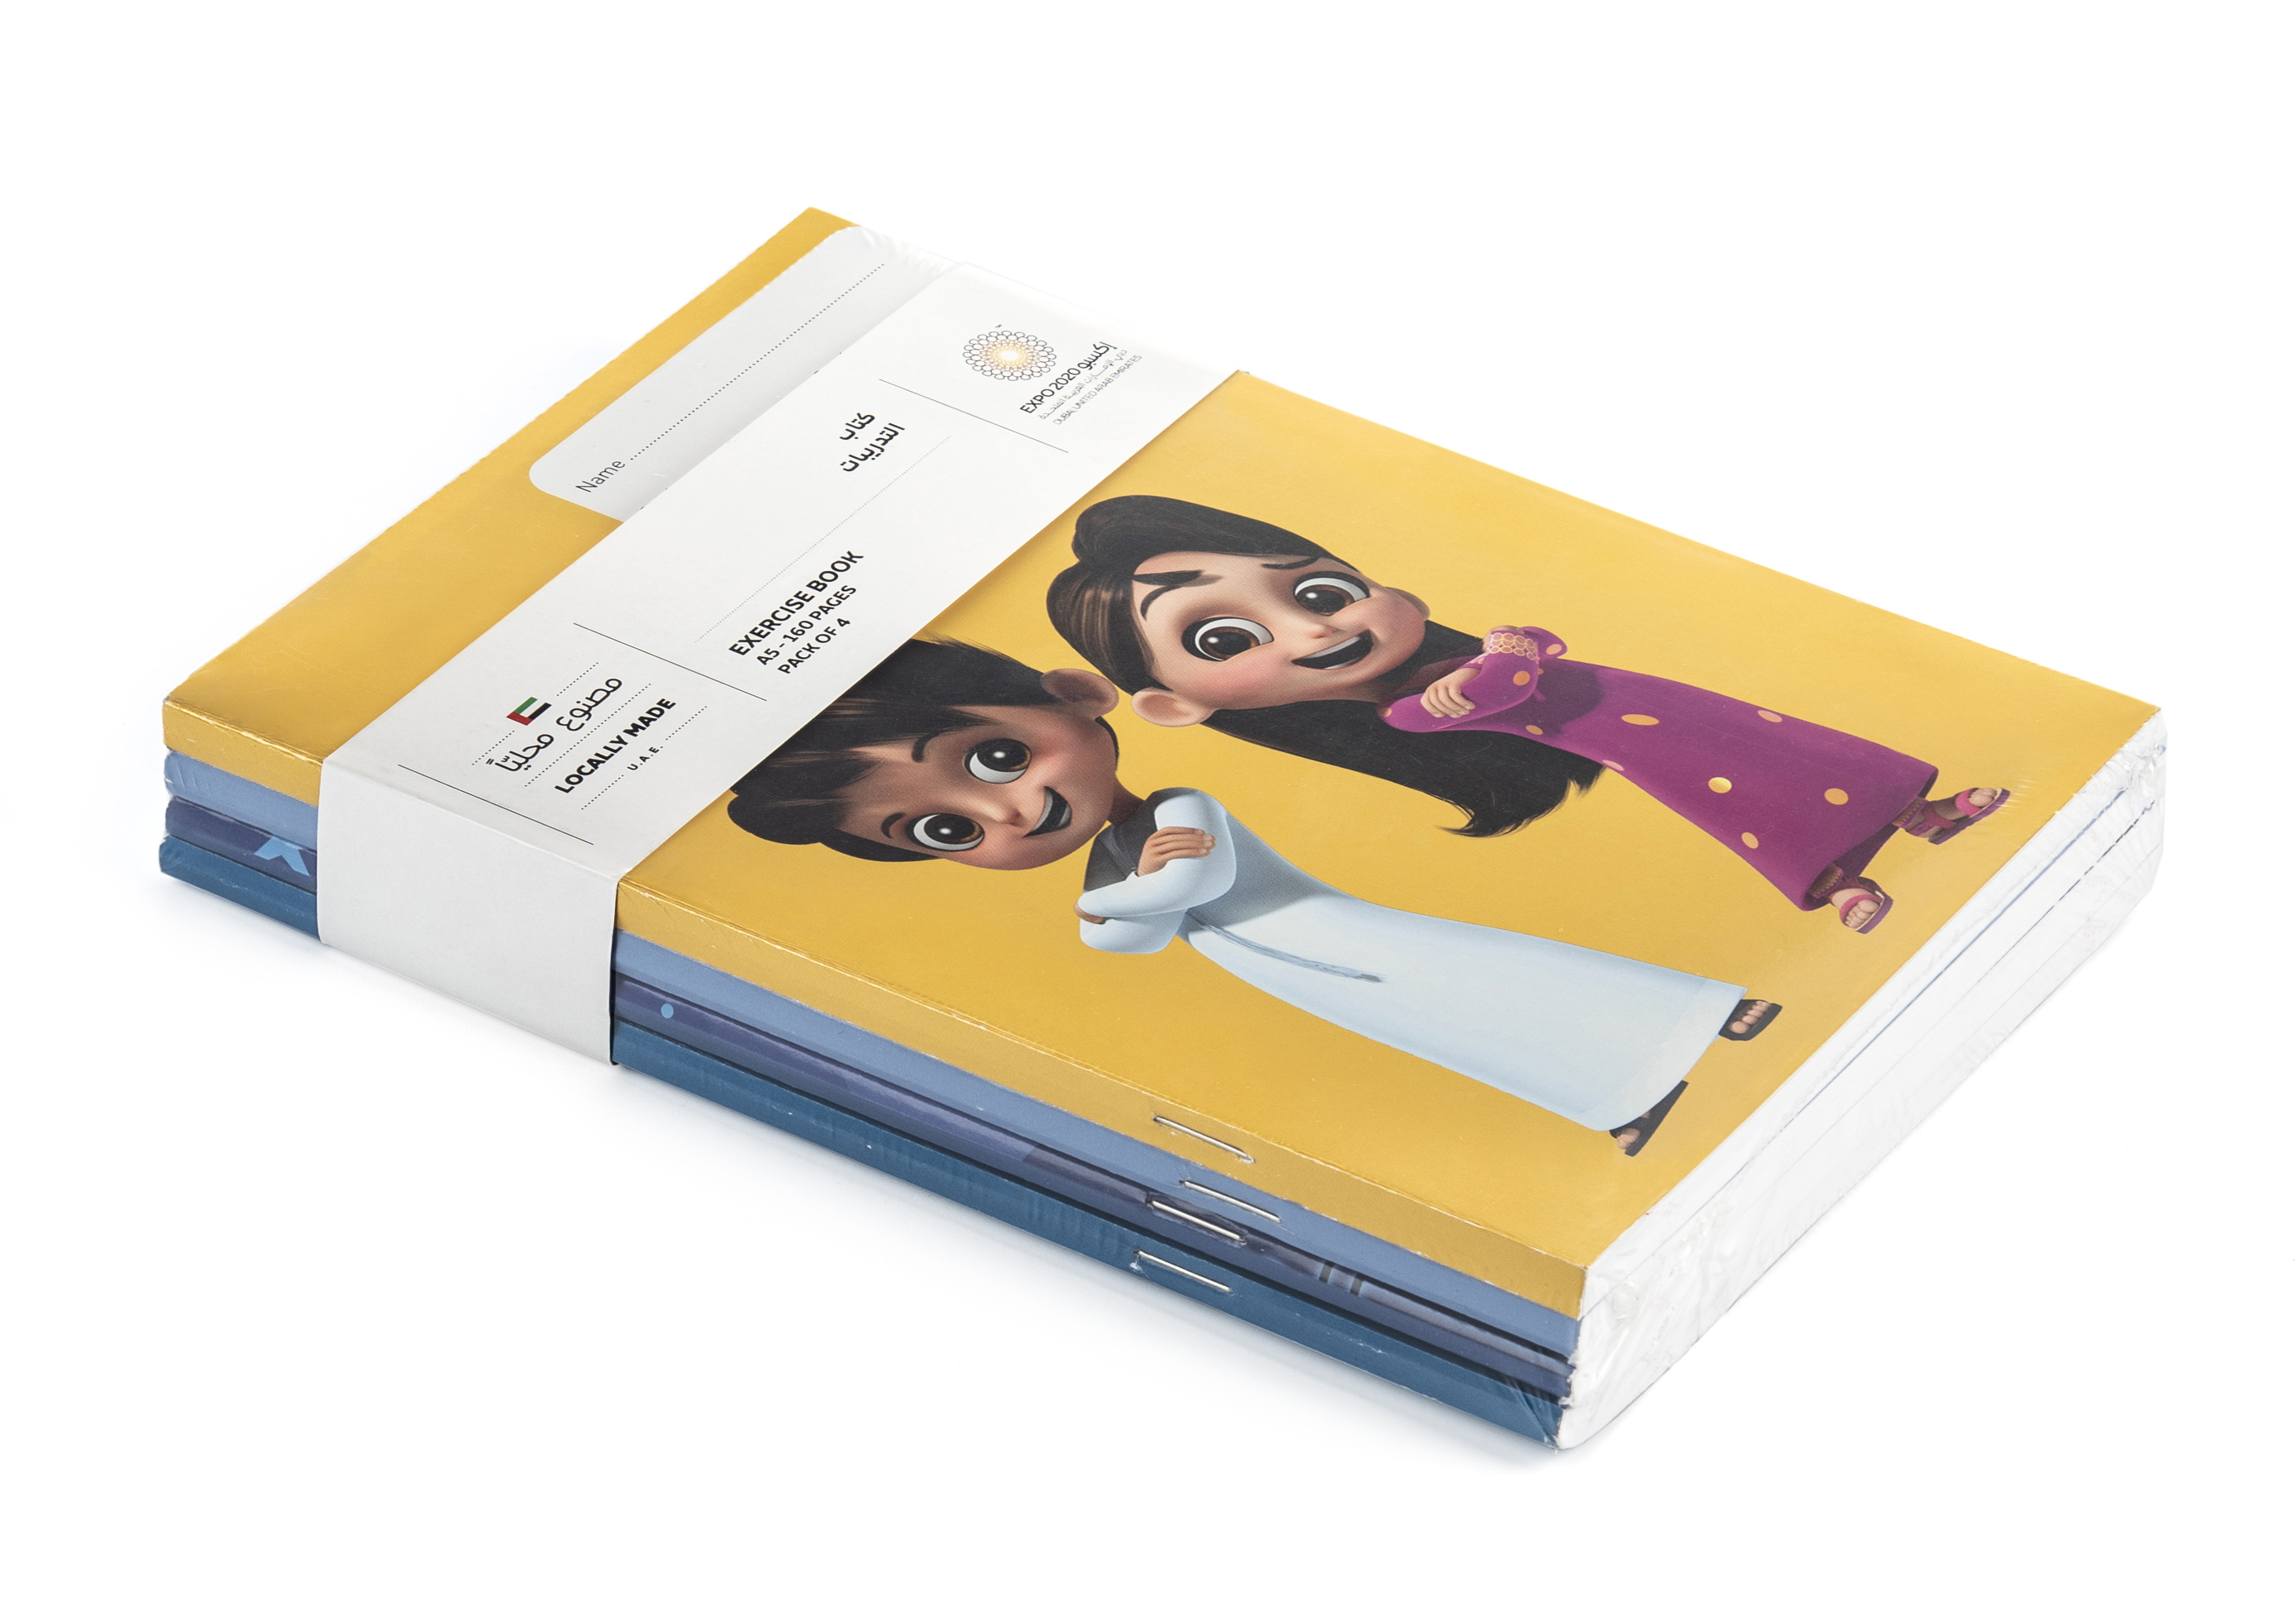 Expo 2020 Dubai Mascots A5 Exercise Books Pack of 4 - 160 Pages